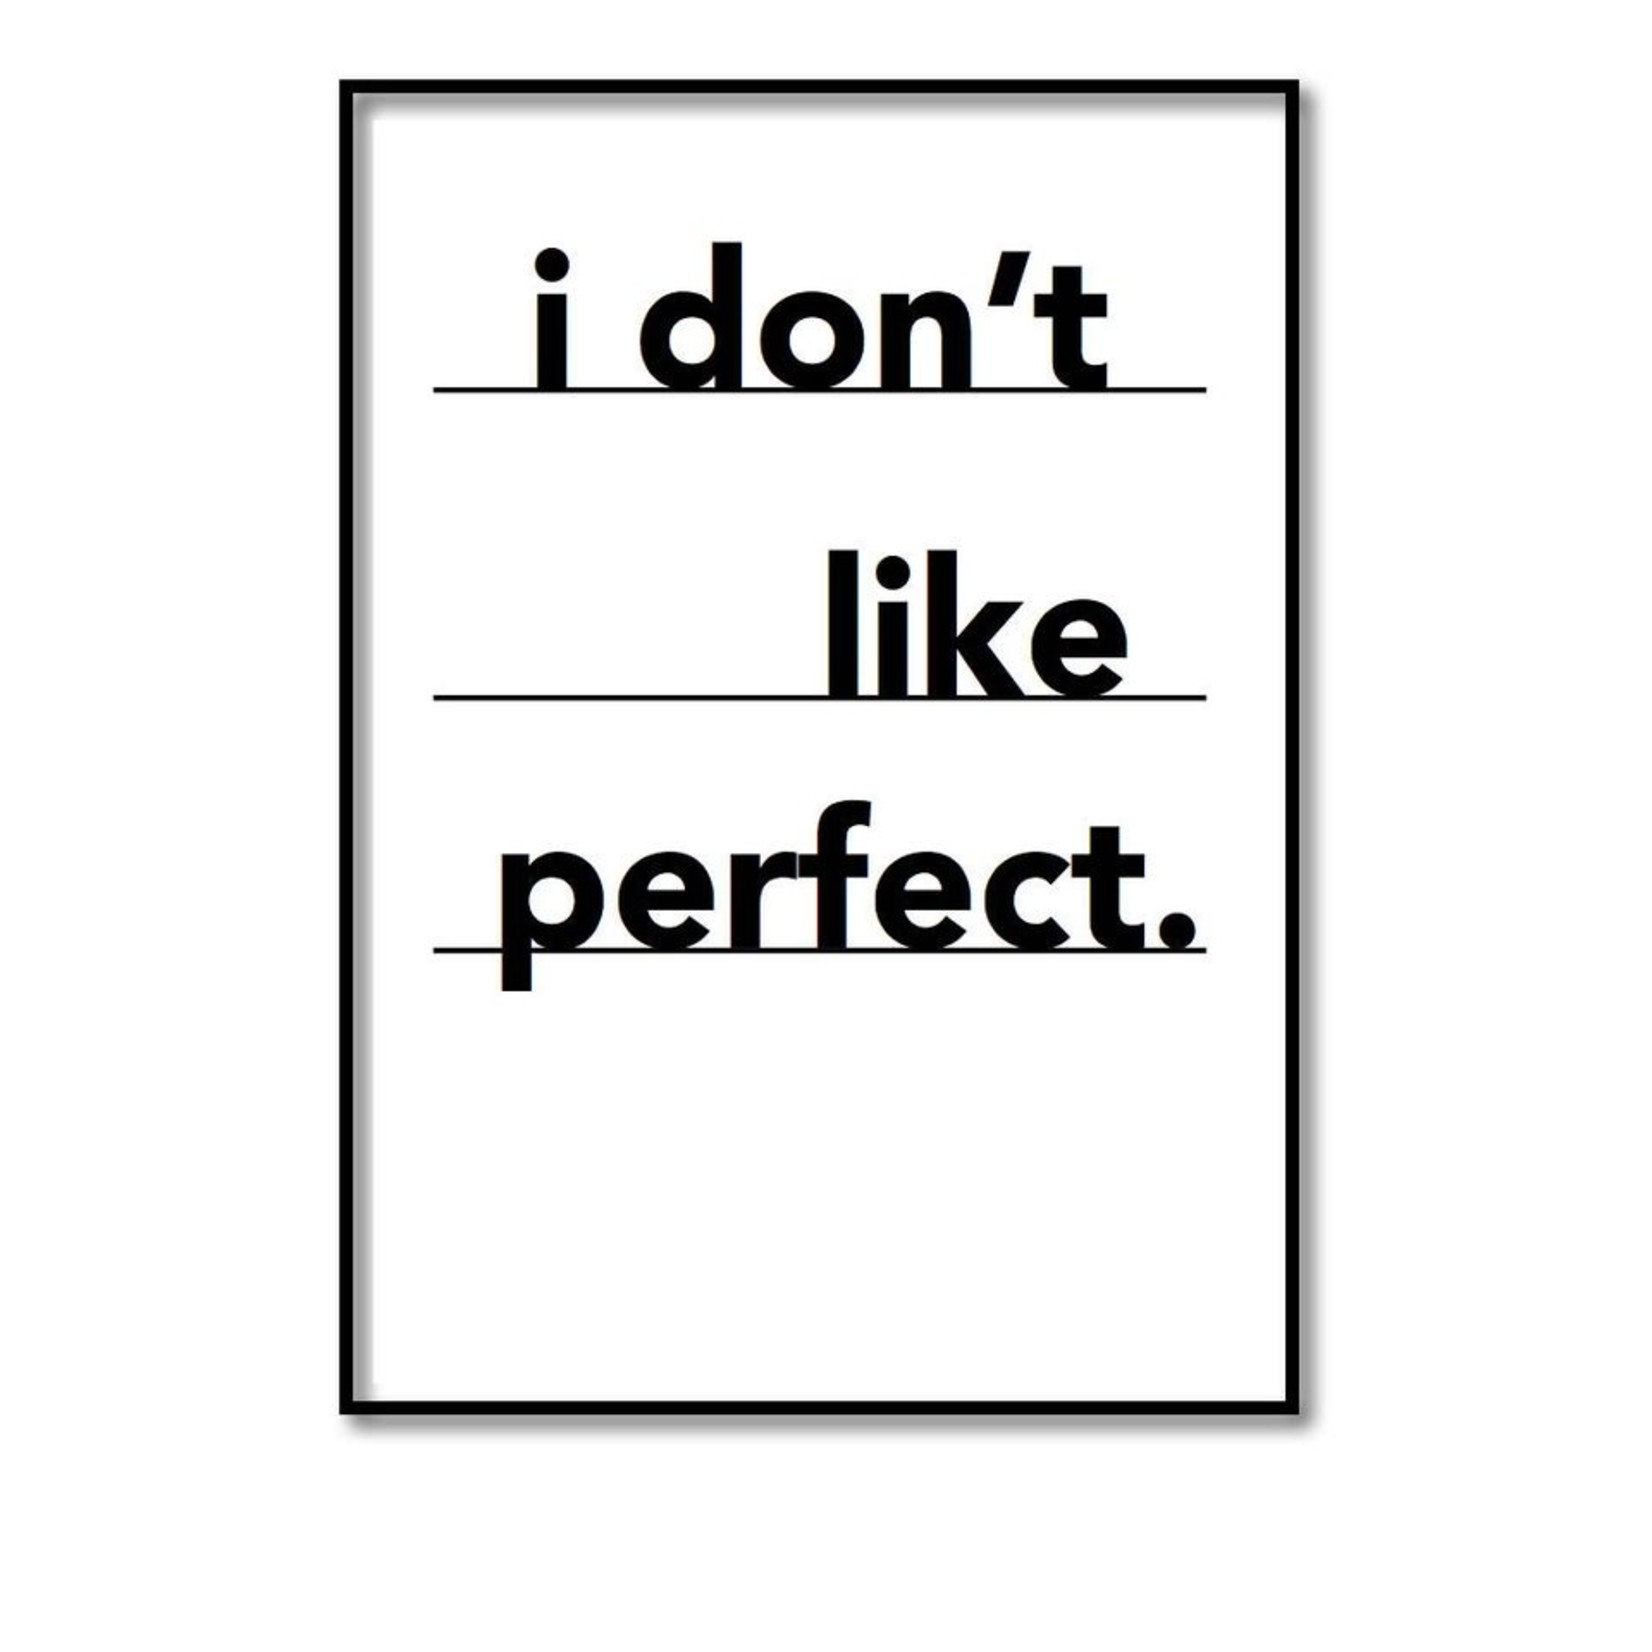 Pixelposter - I don't like perfect (A4)